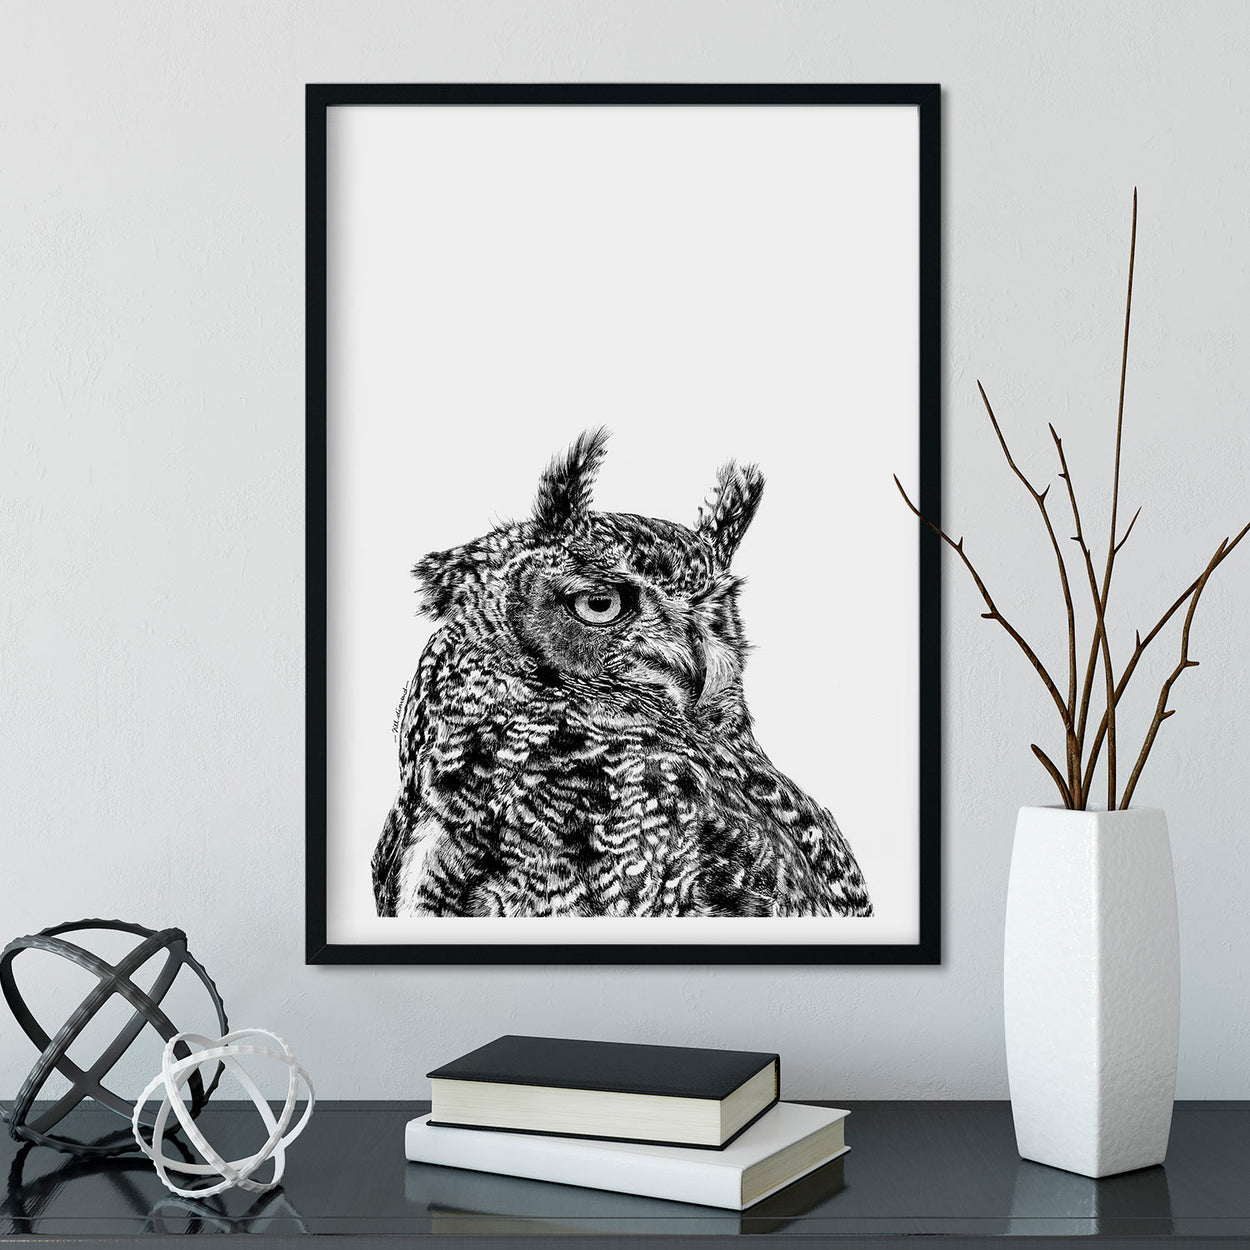 Eagle Owl Wall Art Framed - The Thriving Wild